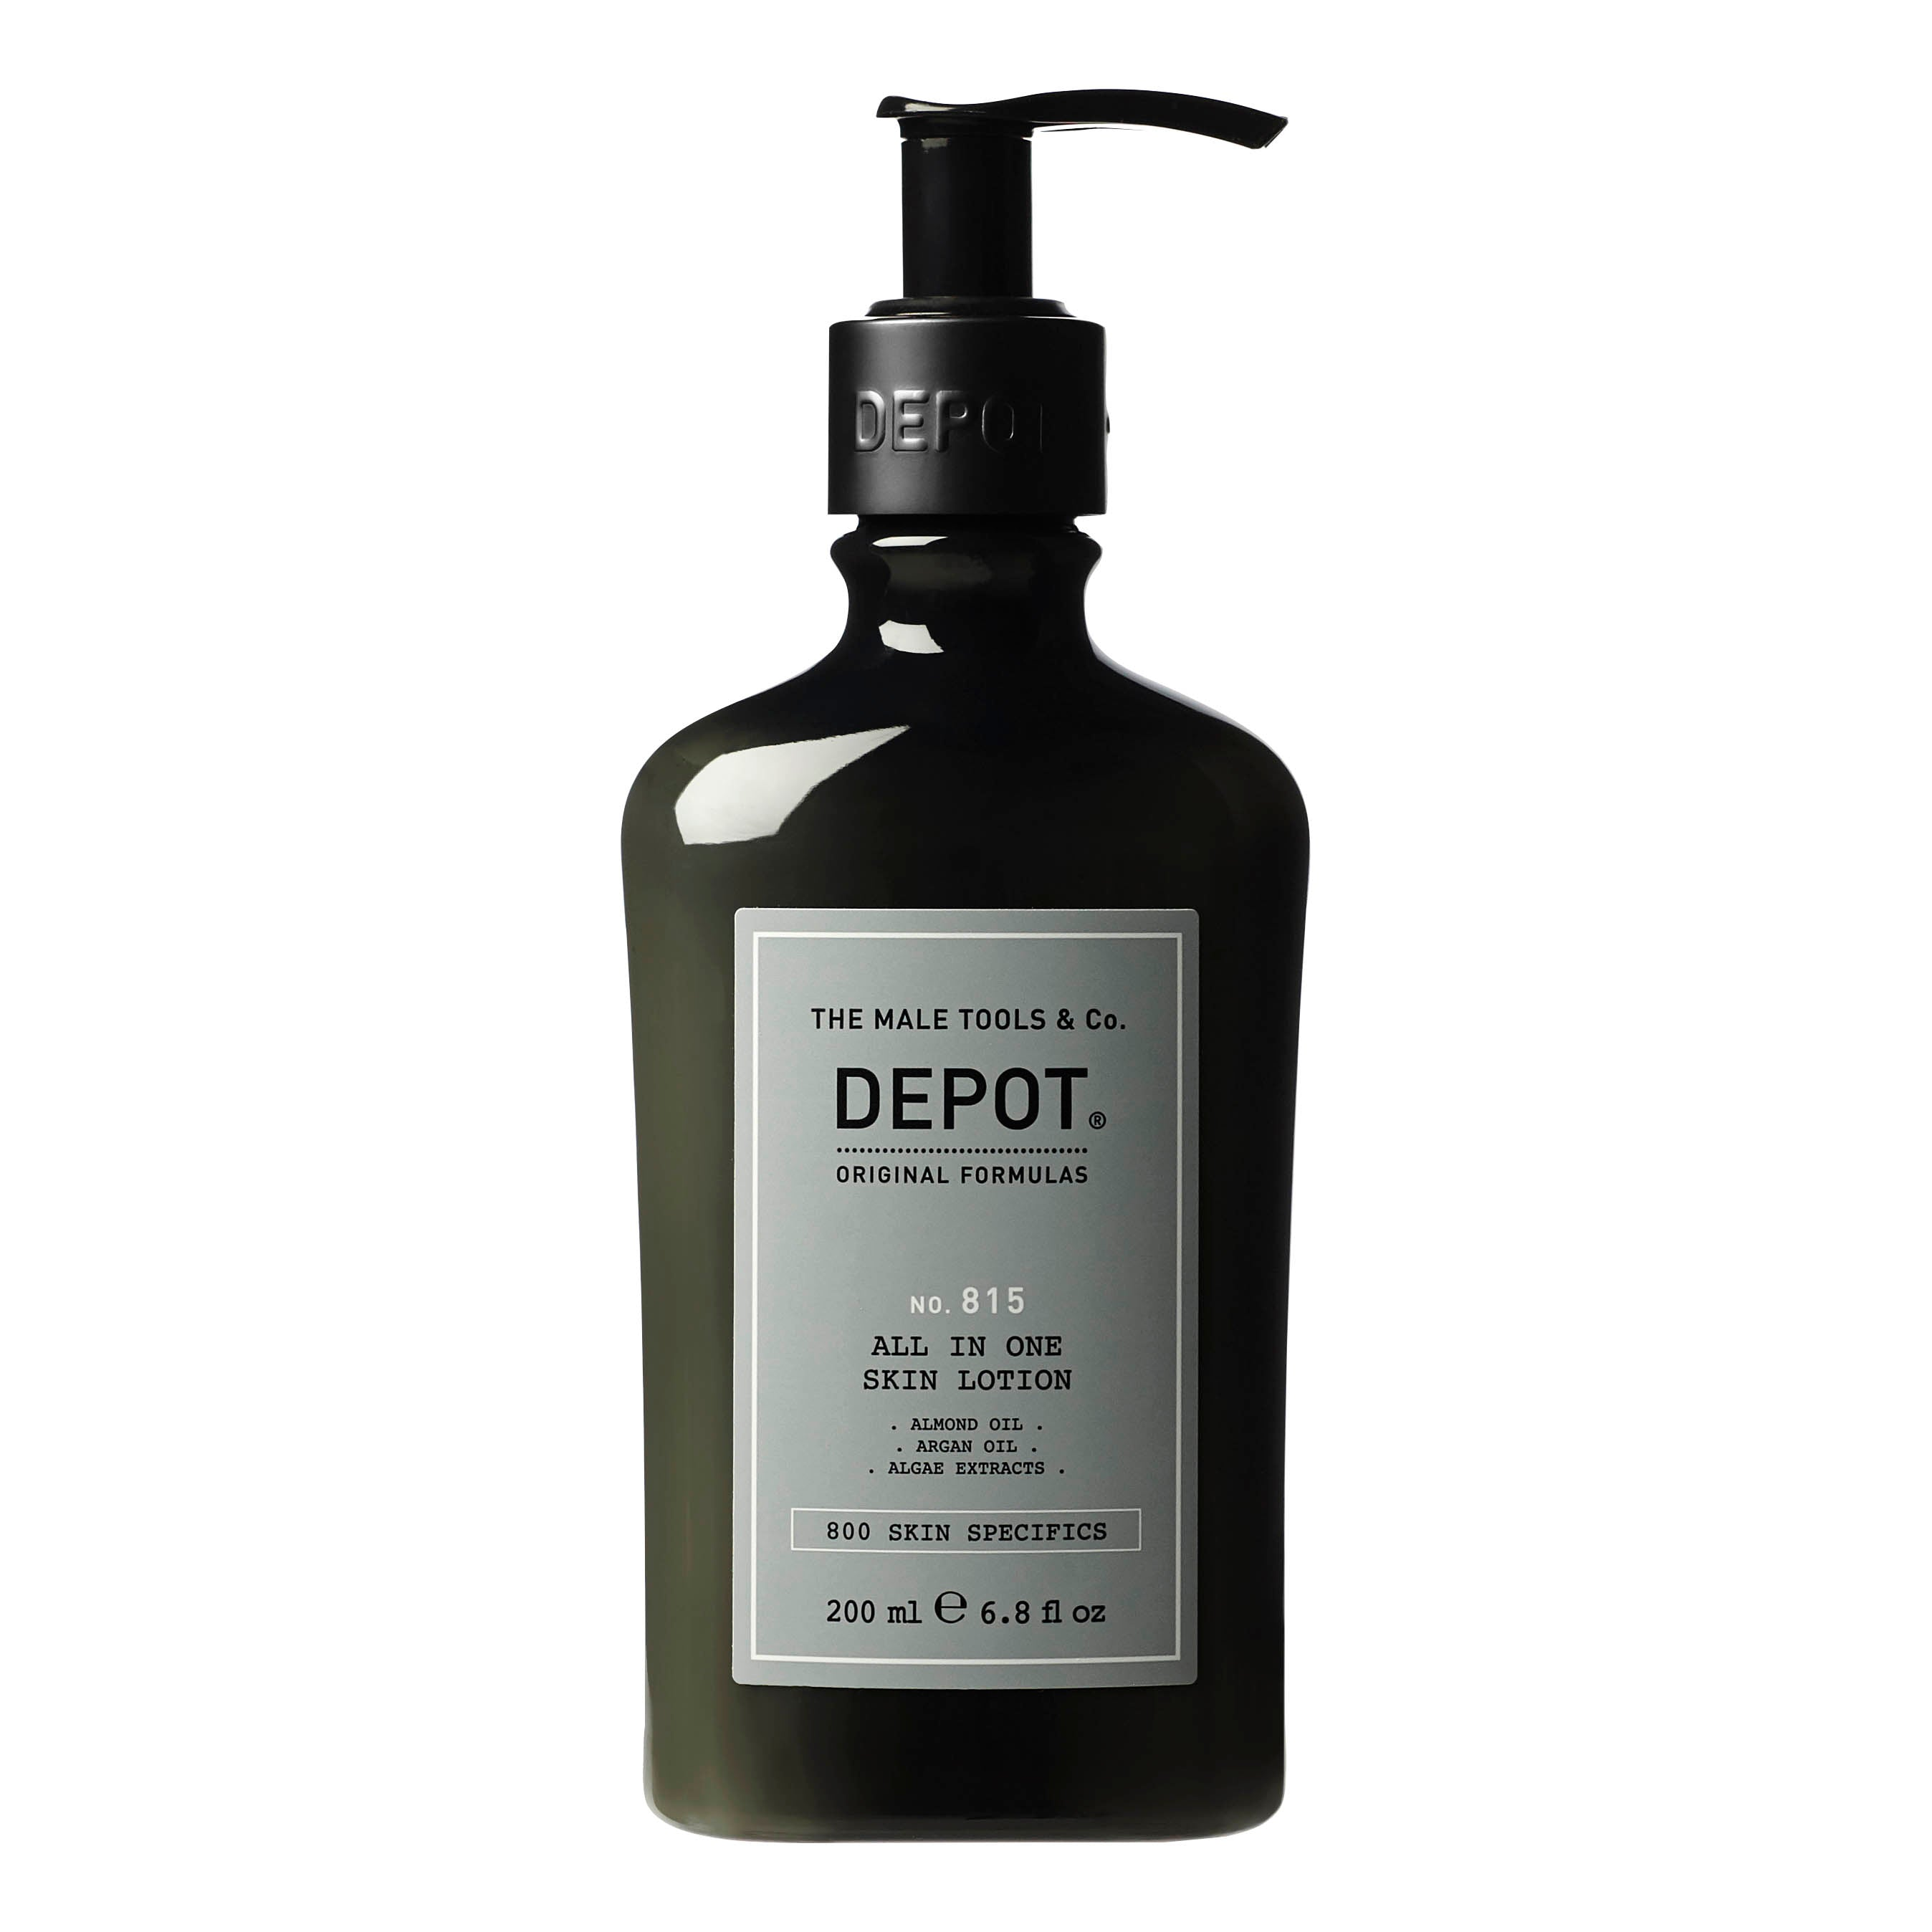 Depot No. 815 All In One Skin Lotion body lotion